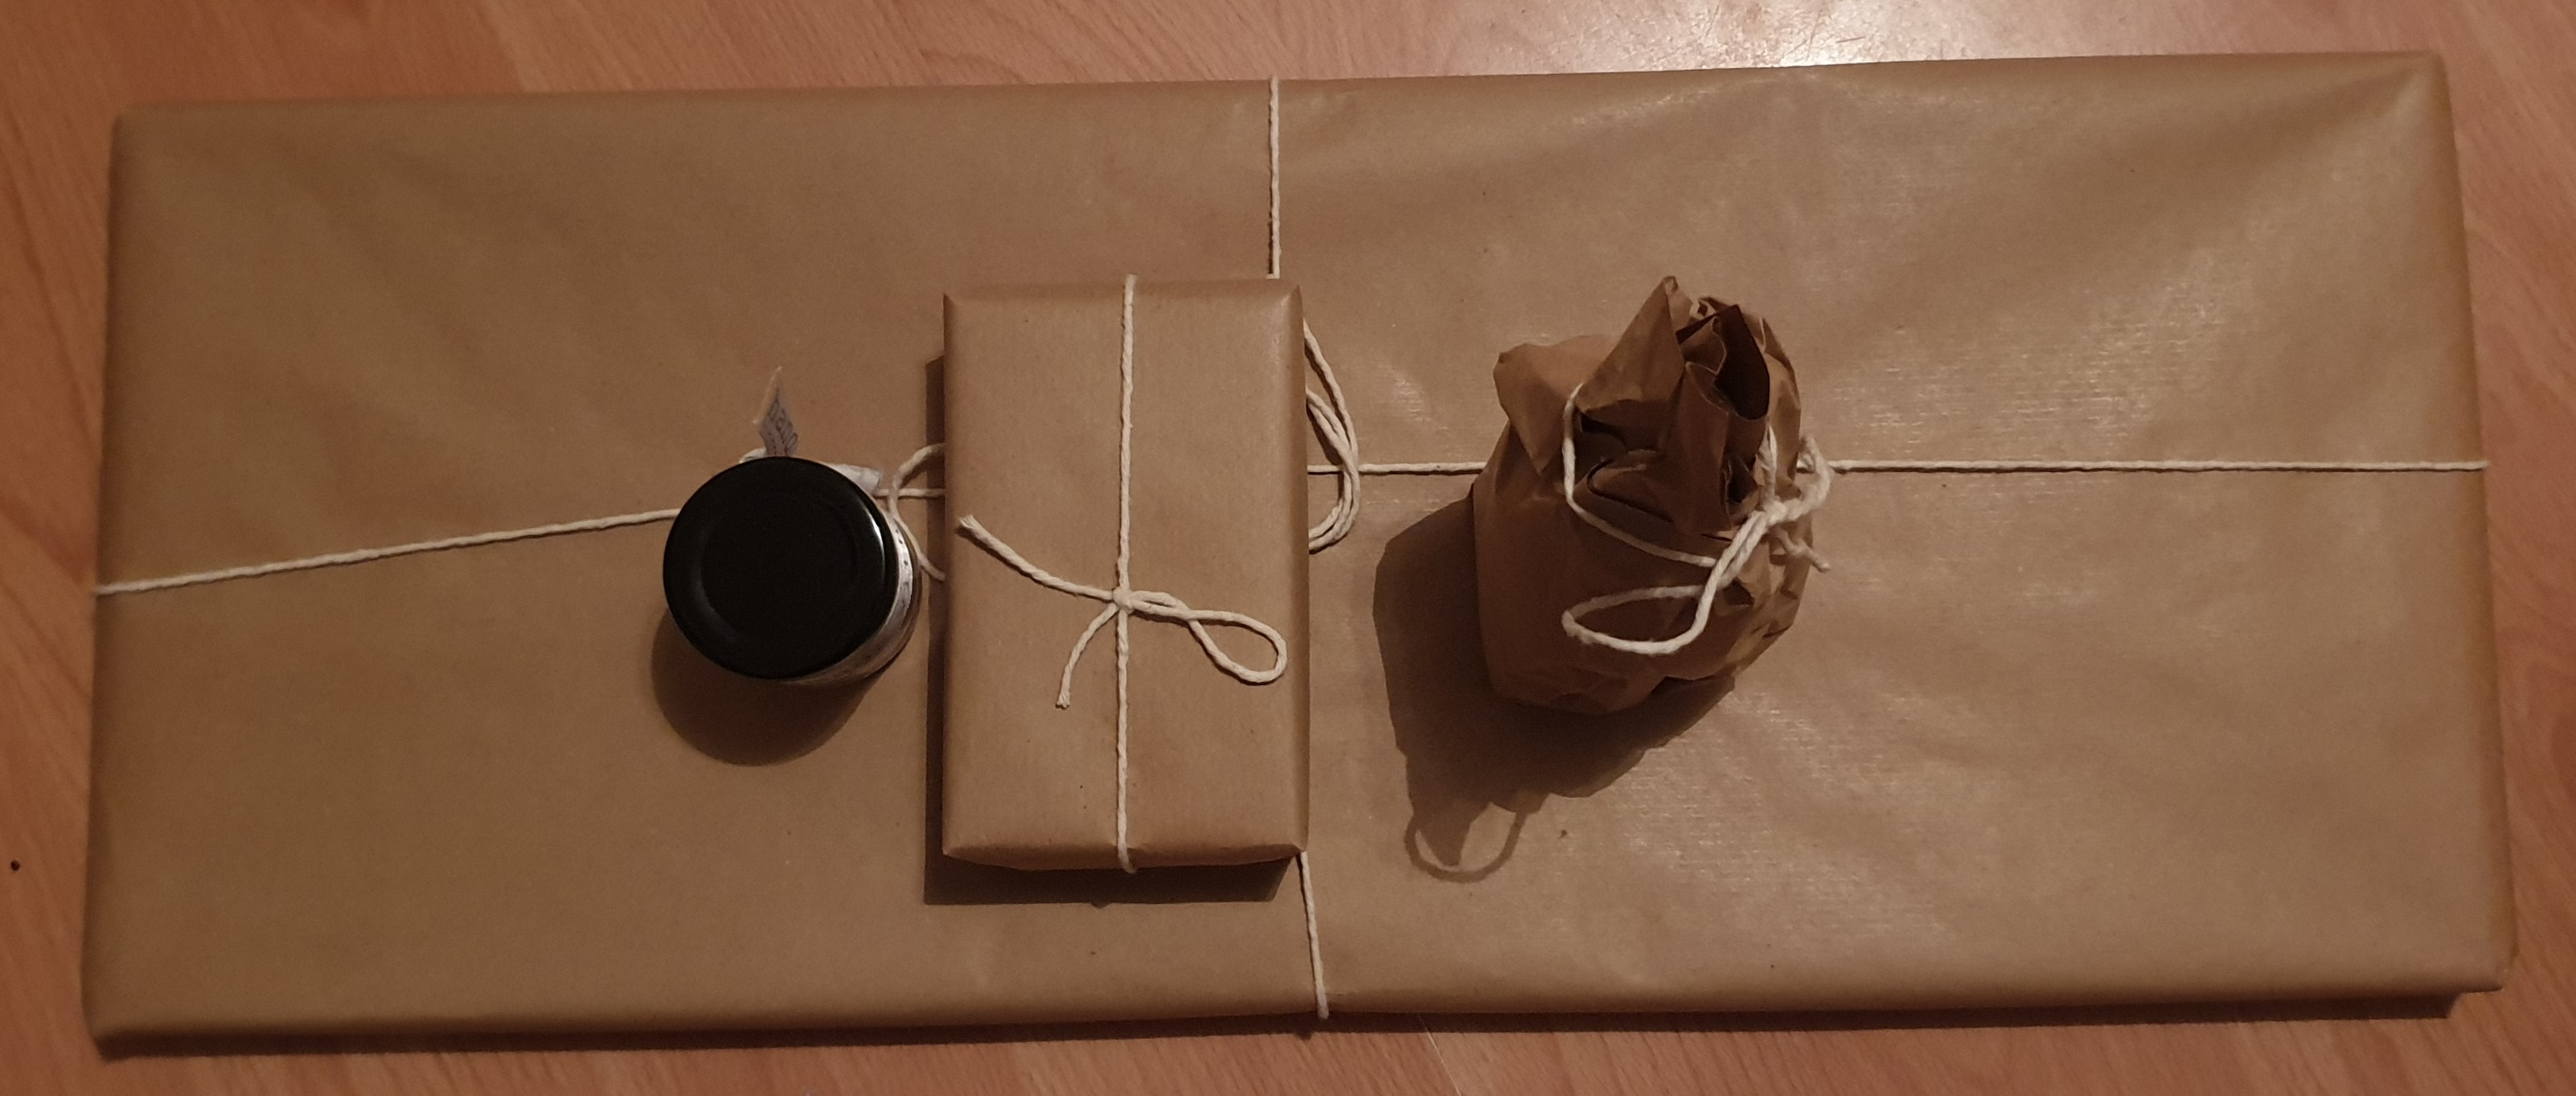 Picture of gifts wrapped in brown paper